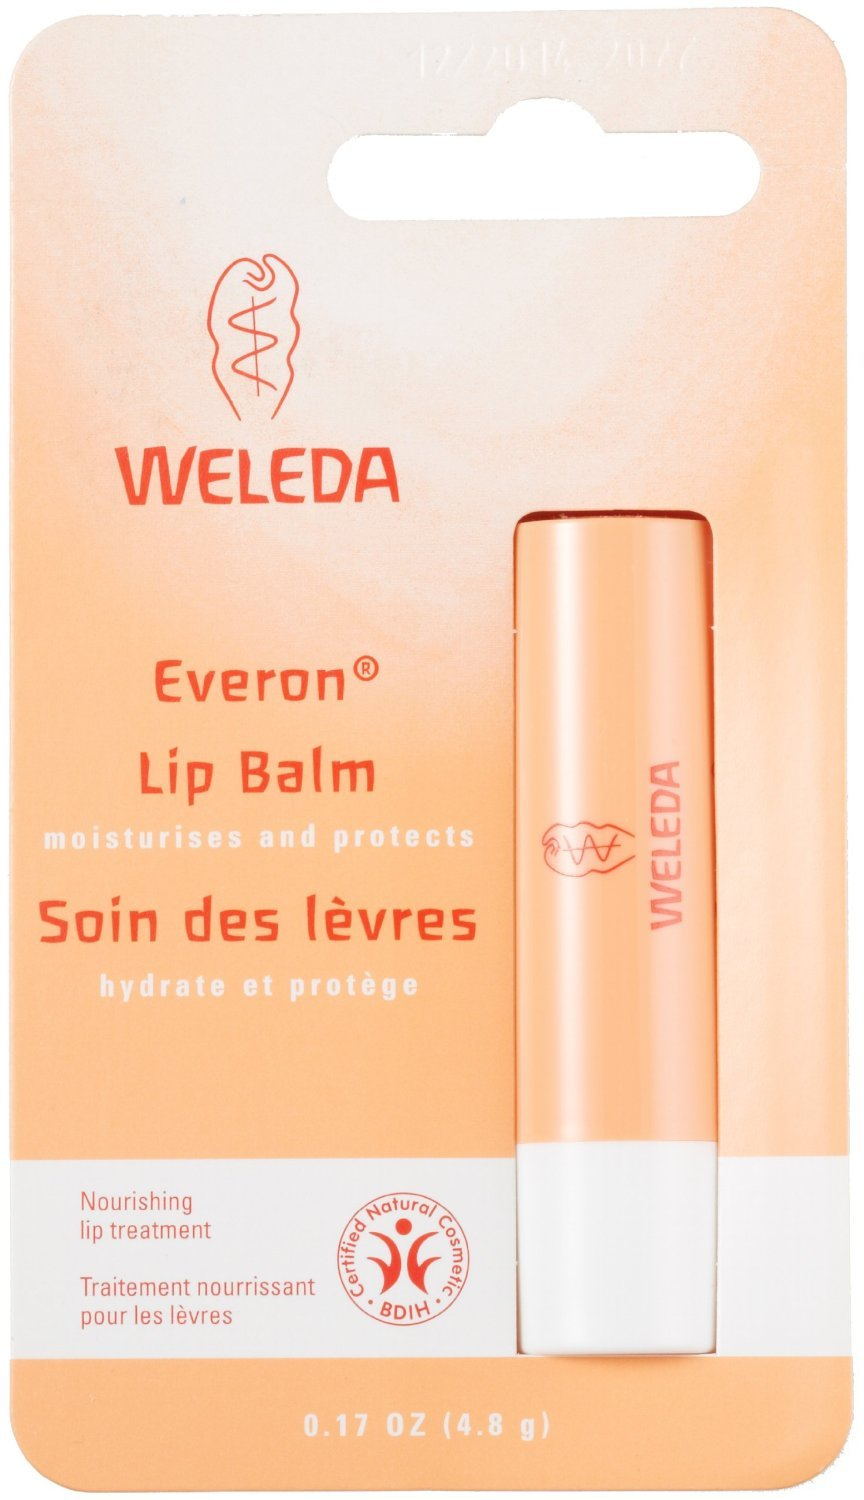 Weleda Everon Lip Balm, Soin Des Levres - 0.17 Oz Australian Gold Face Guard Sunscreen Stick SPF 50+ 0.50 oz (Pack of 6)